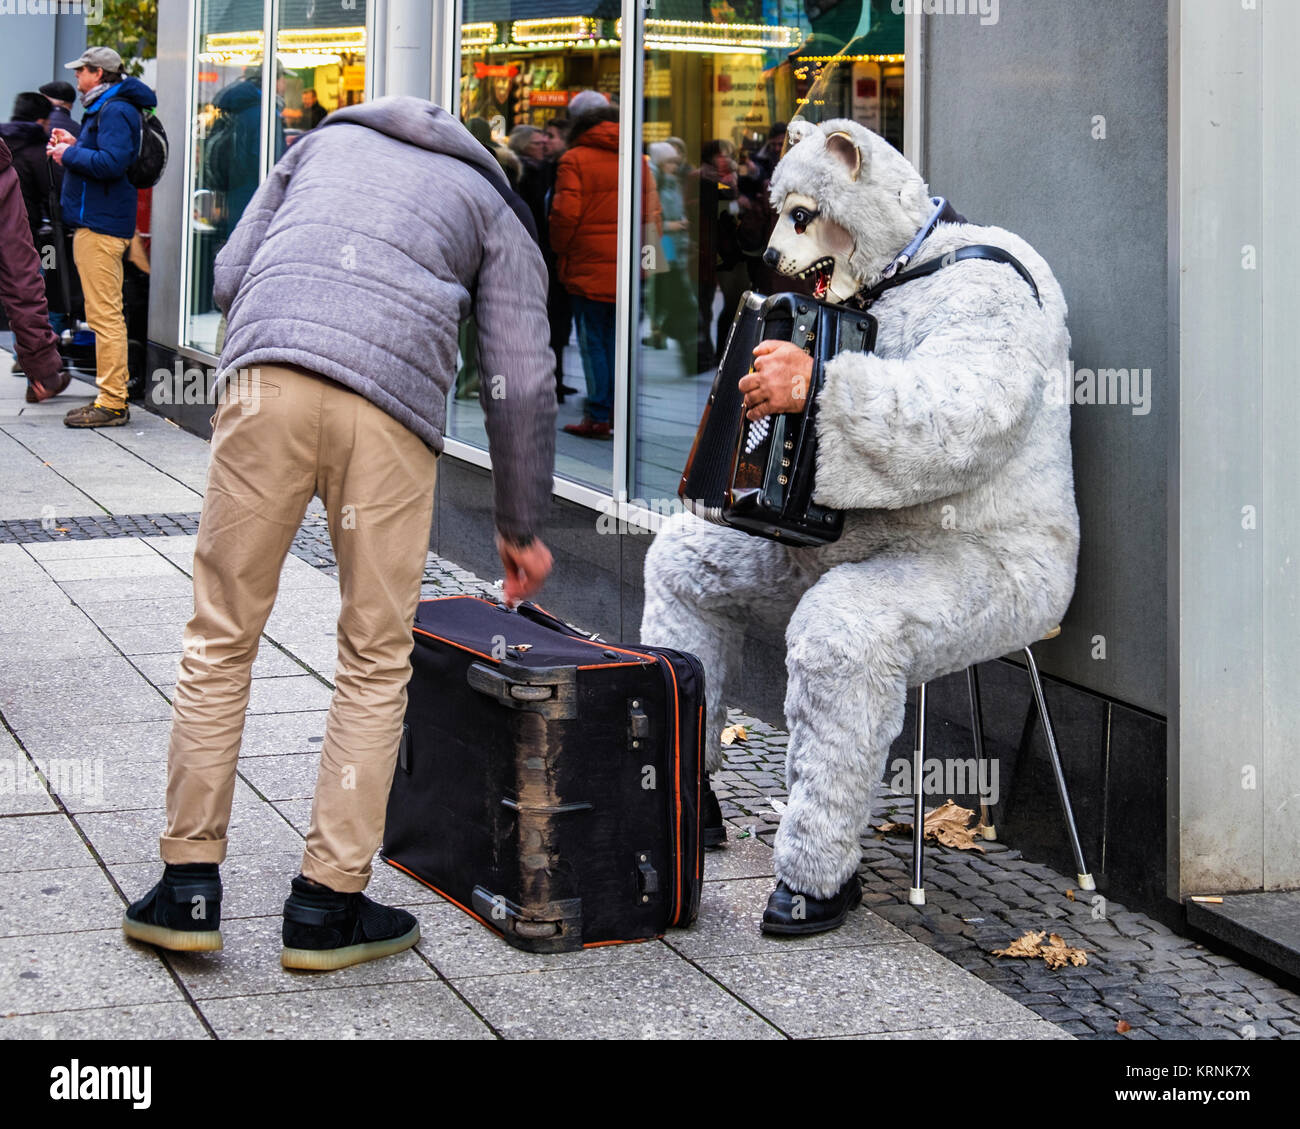 Frankfurt, Germany.Passerby giving money to man playing accorcdion in Bear fancy dress outfit - Stock Image